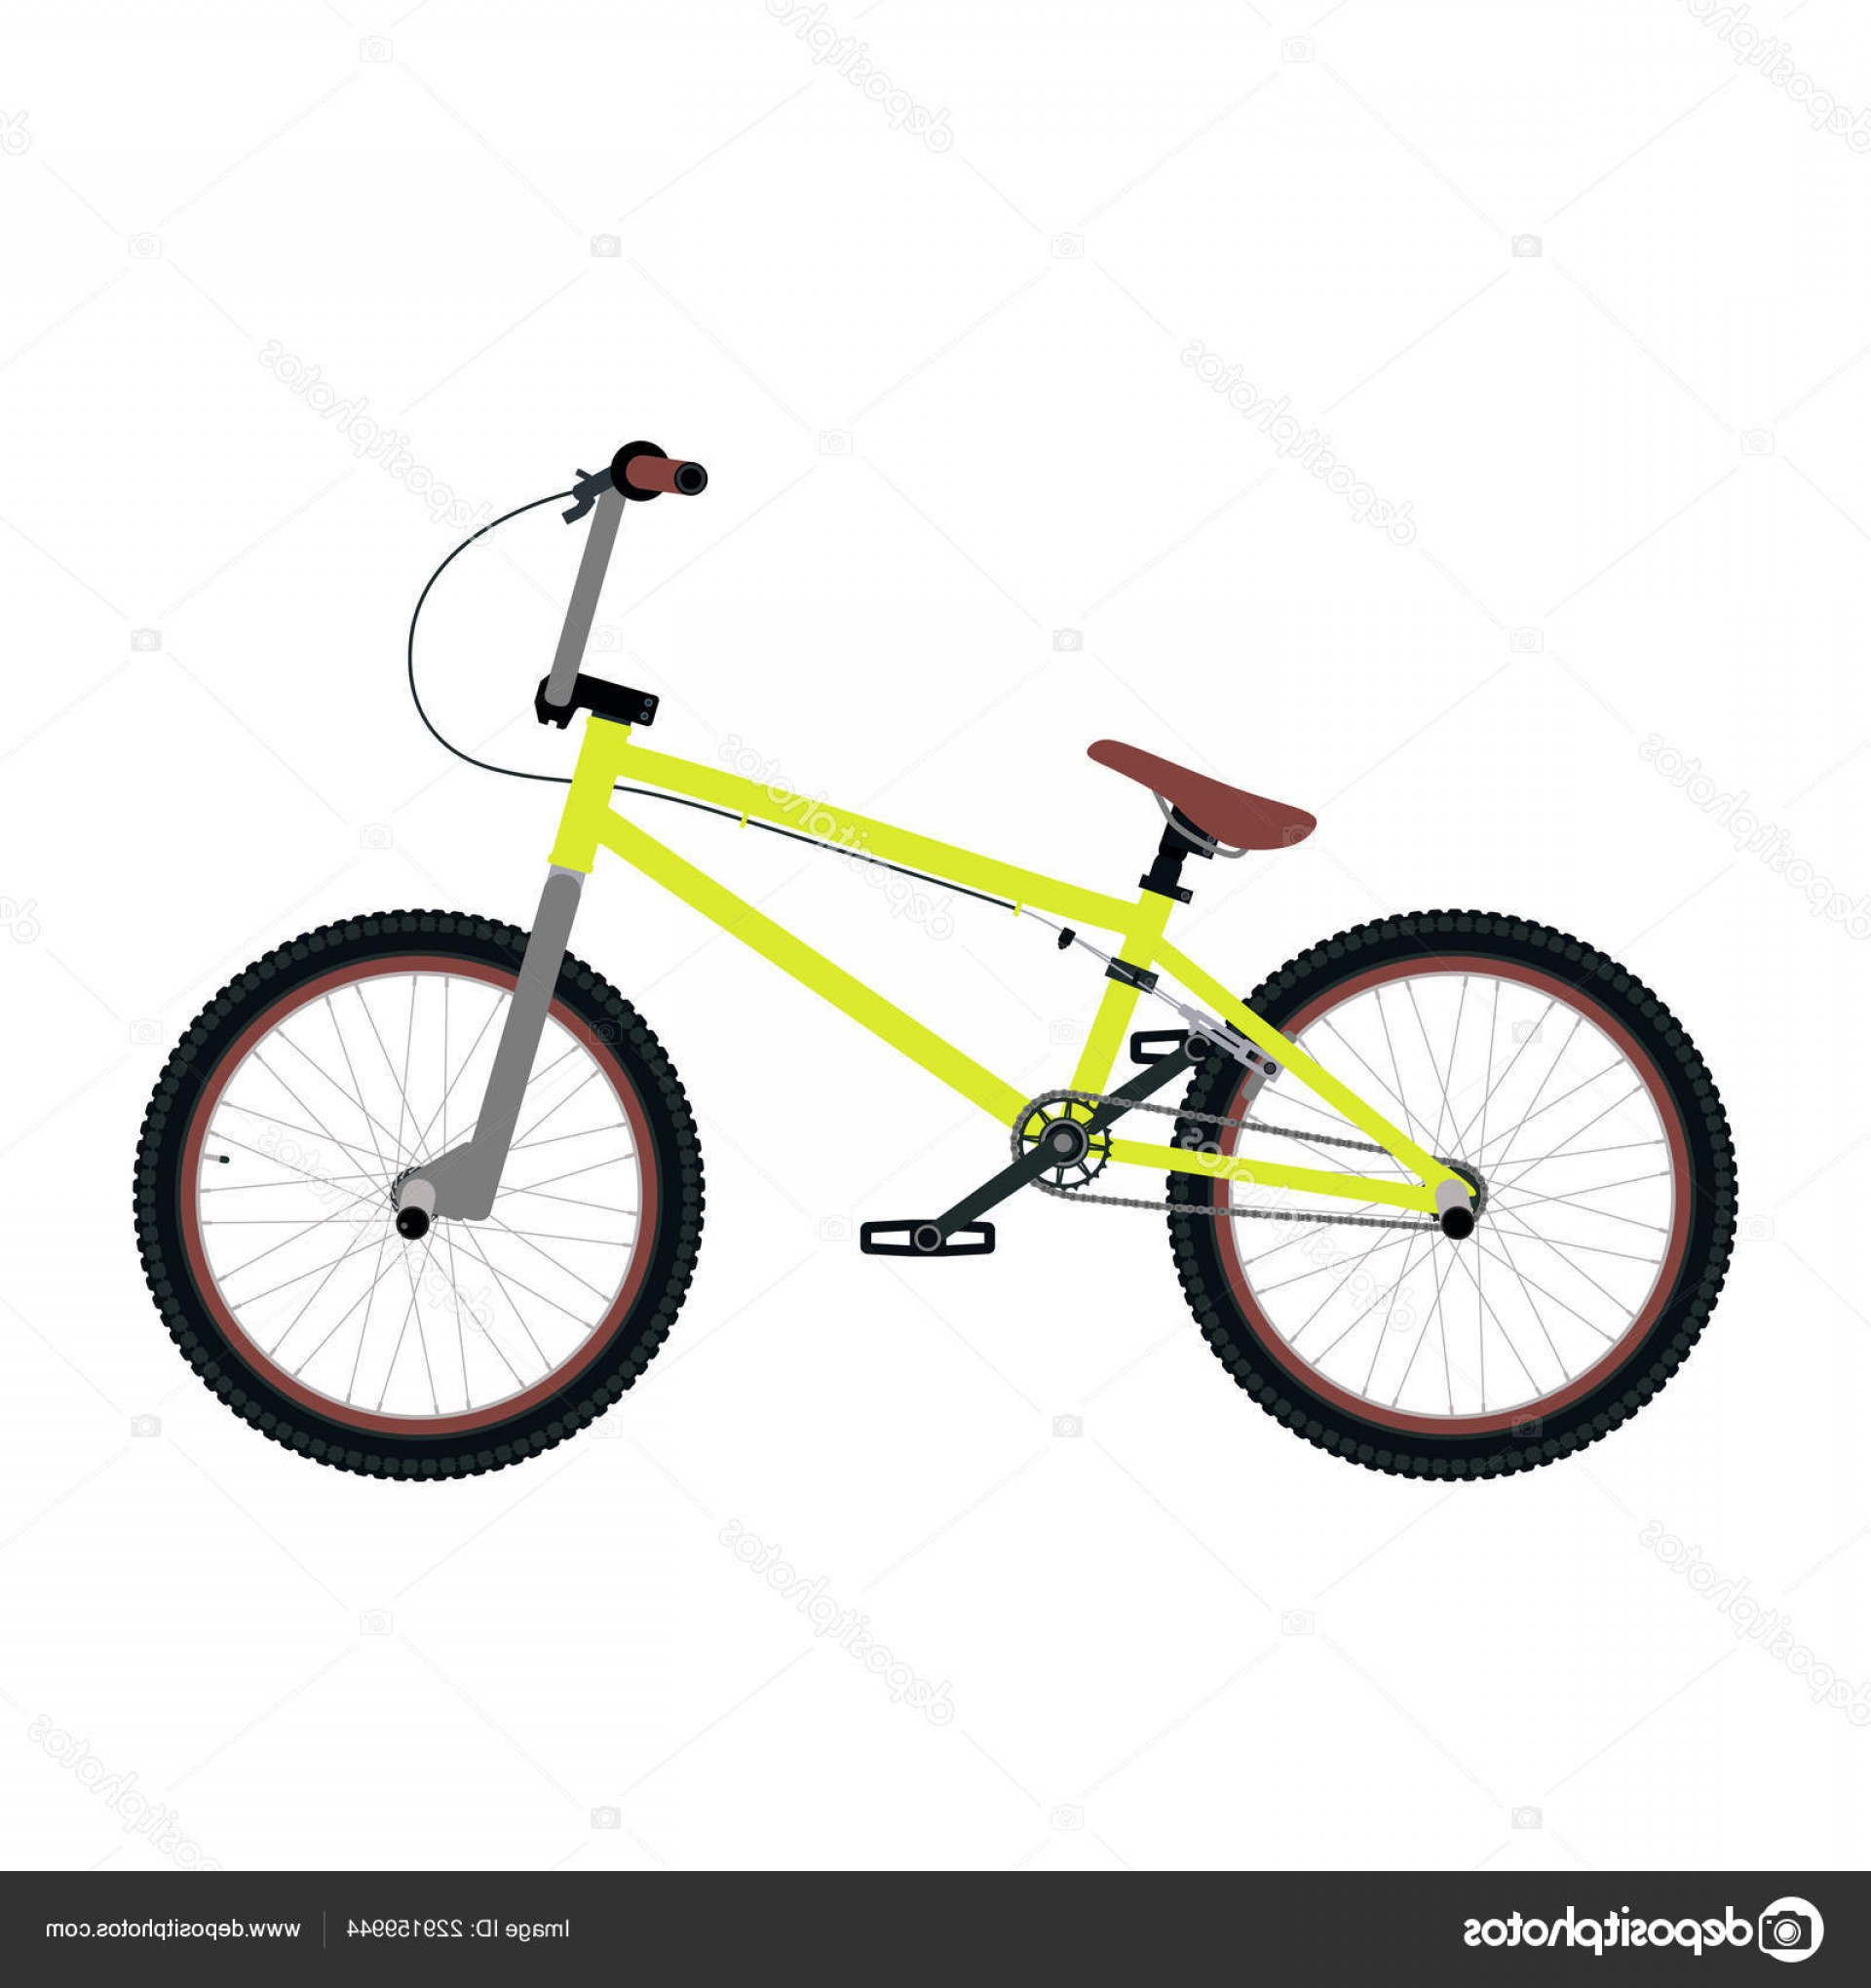 BMX Bike Tire Vector: Stock Illustration Vector Bmx Bicycle Isolated White